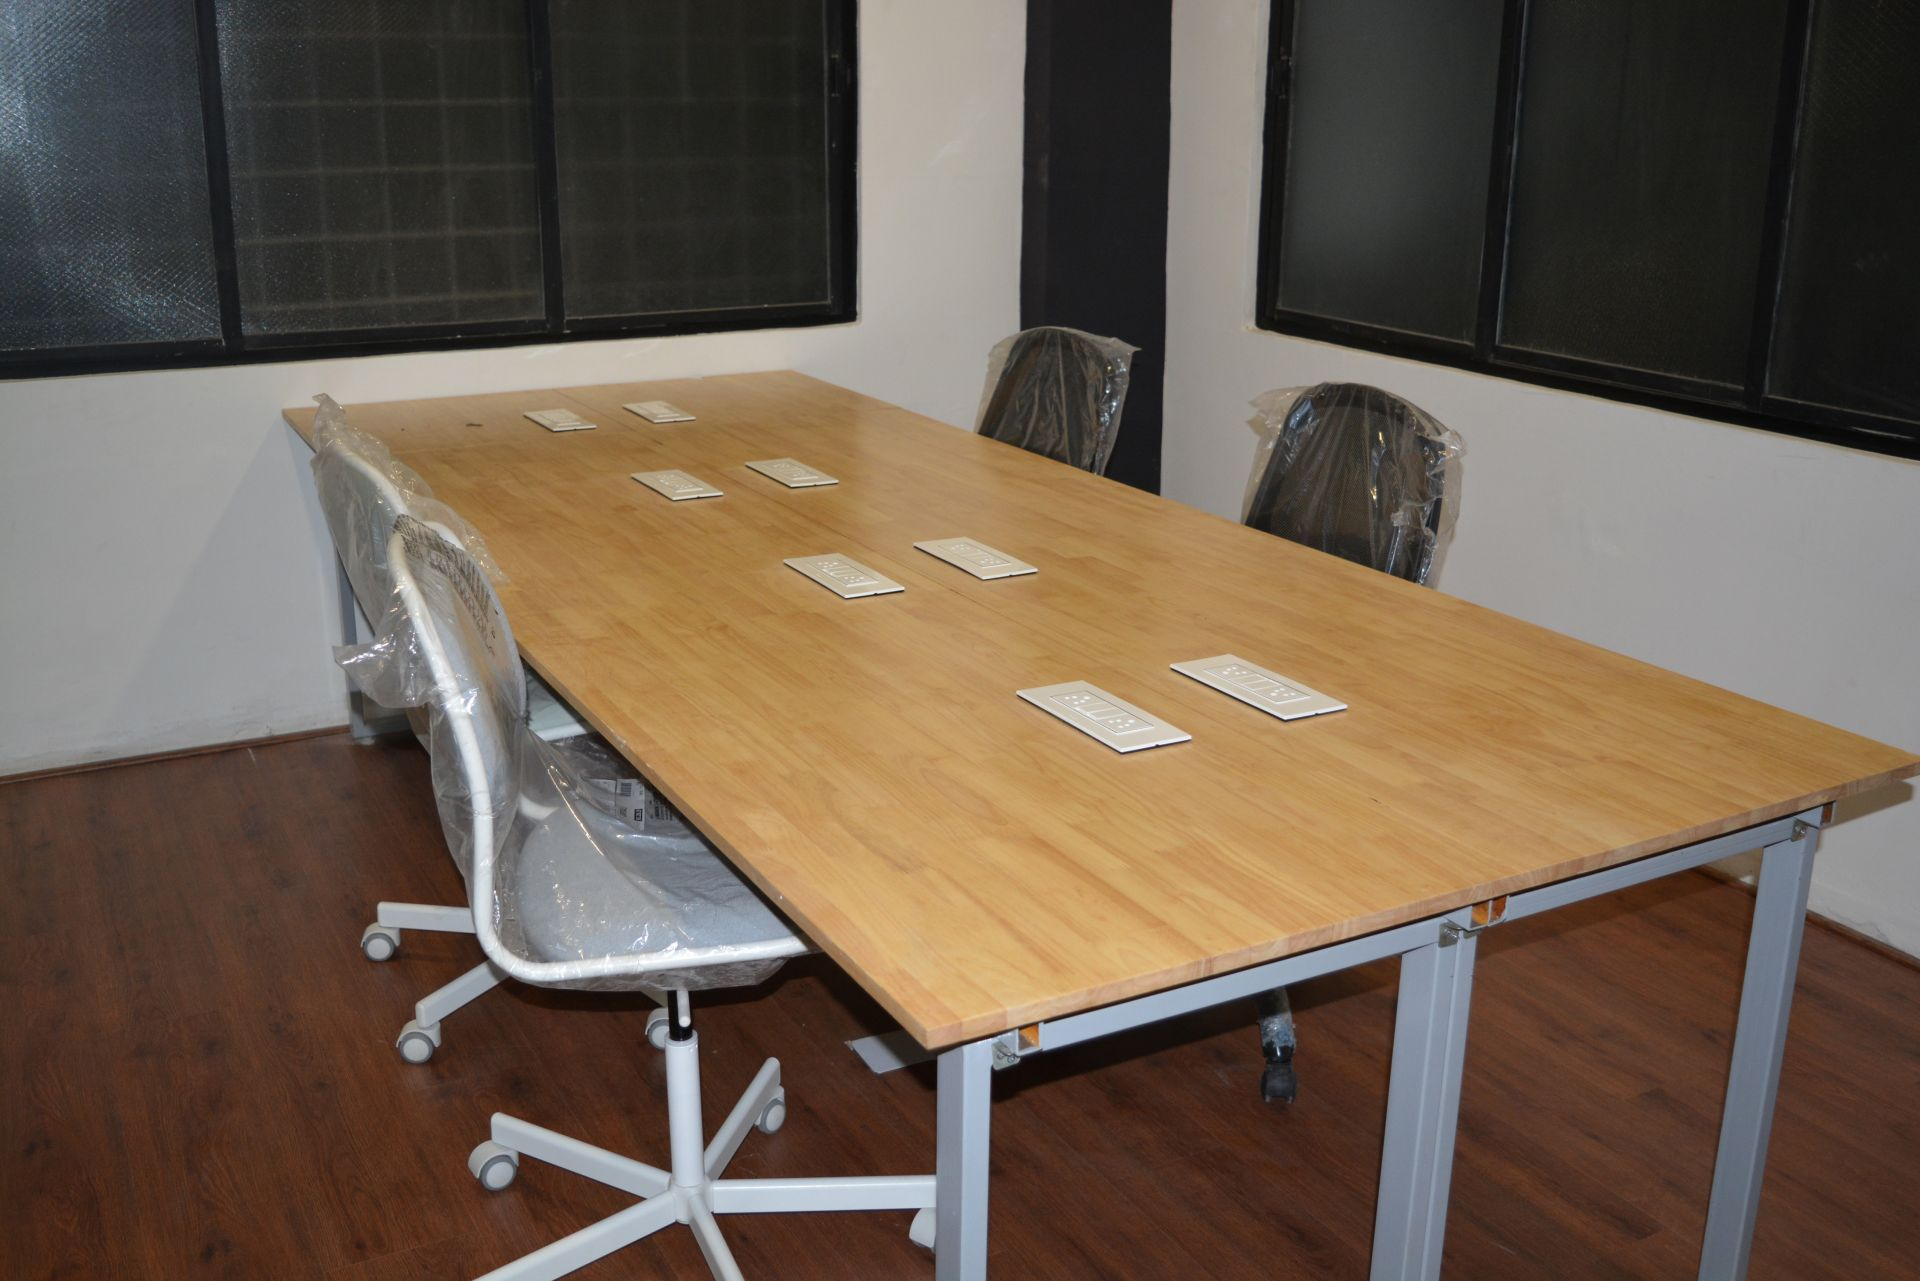 InnovationHQ Co-Working Space, Hyderabad